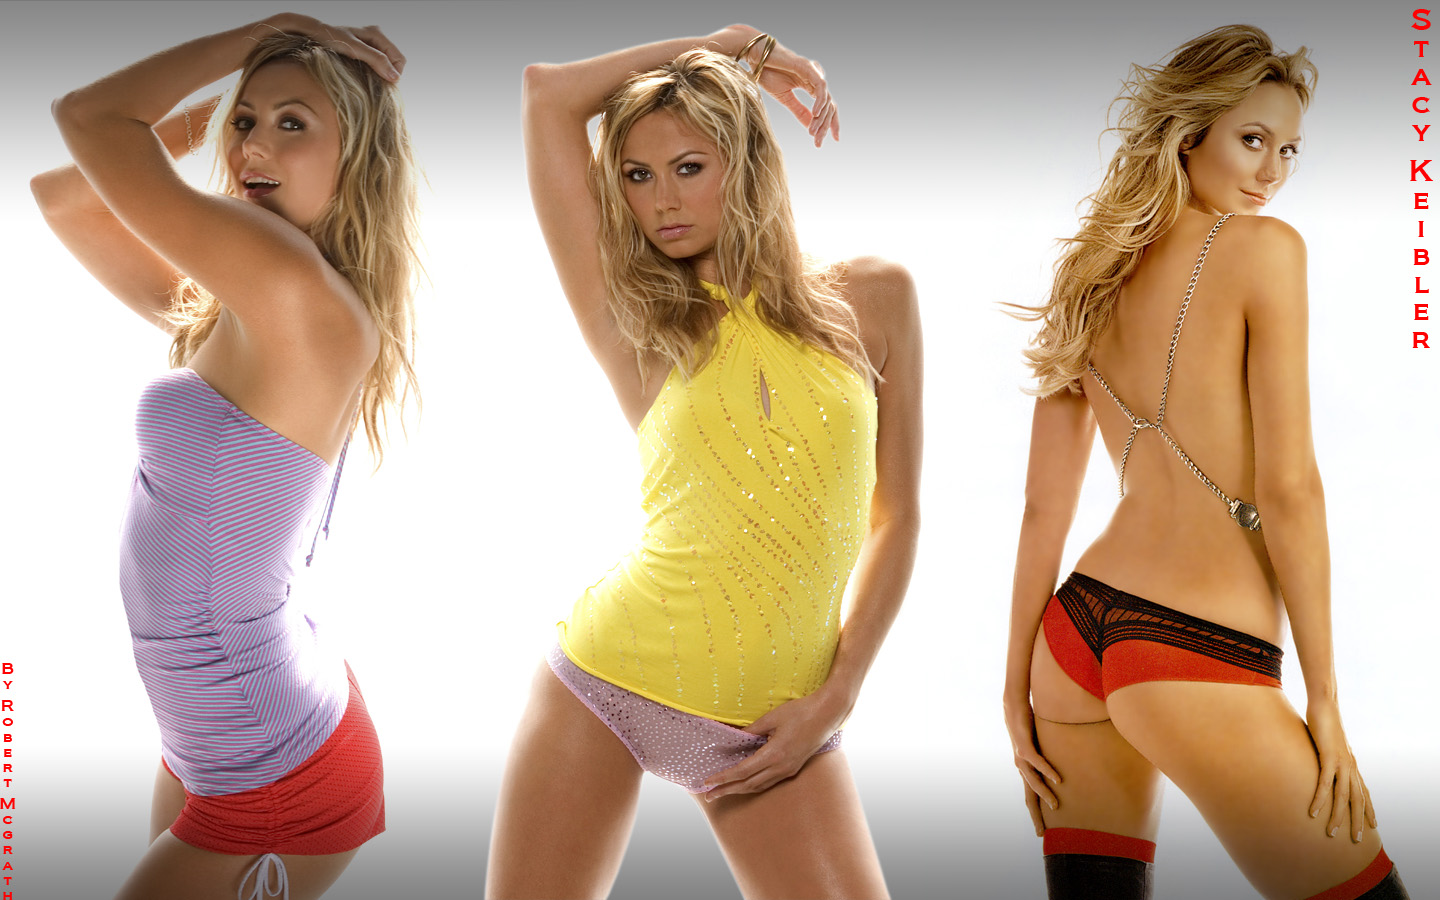 kardashian high end: stacy keibler hot wallpaper